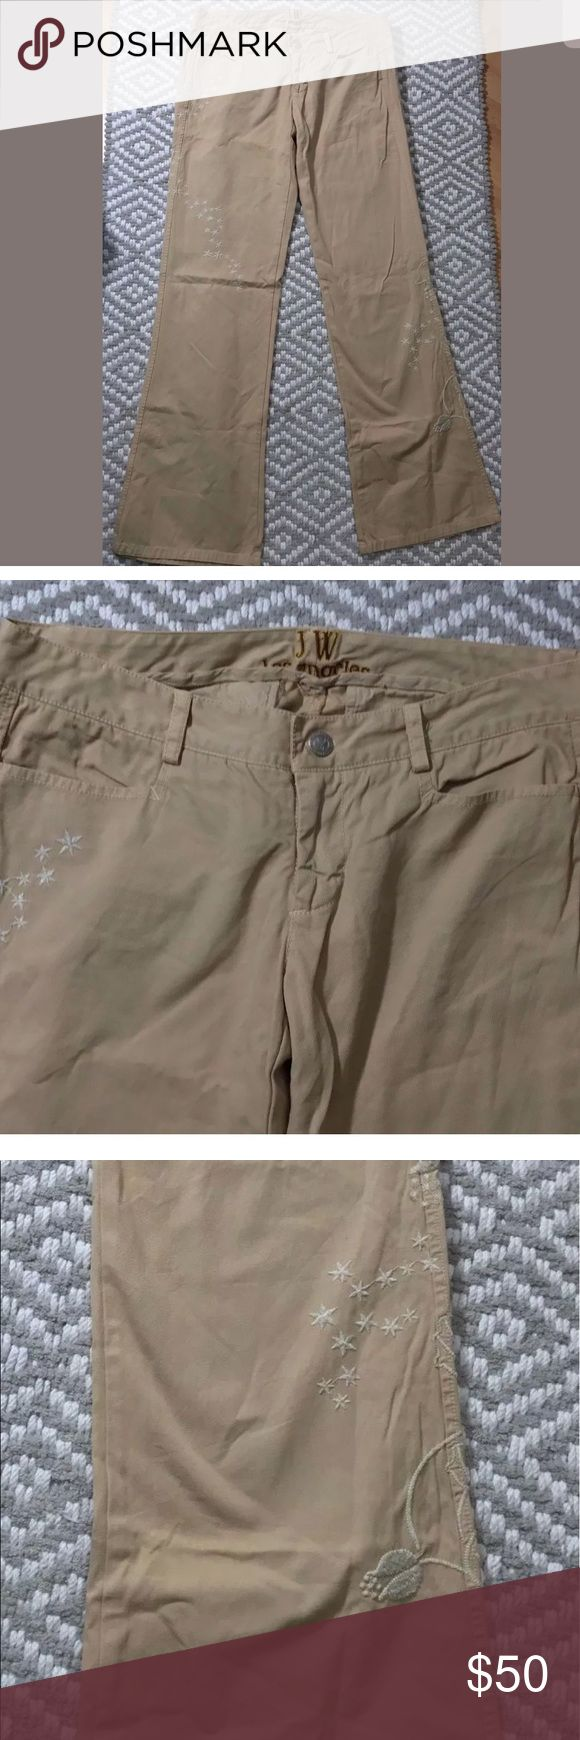 """Johnny Was 3j workshop embroidered pants jwla JW Los angeles by Johnny Was  Size small 100% cotton Tan with embroidery 32"""" inseam Leg openings are  21"""" Waist is 32 """"  Front rise is 7 """" Rear Rise is  13""""    Excellent, pre-owned condition. From clean, non-smoking environment. Johnny Was Pants"""